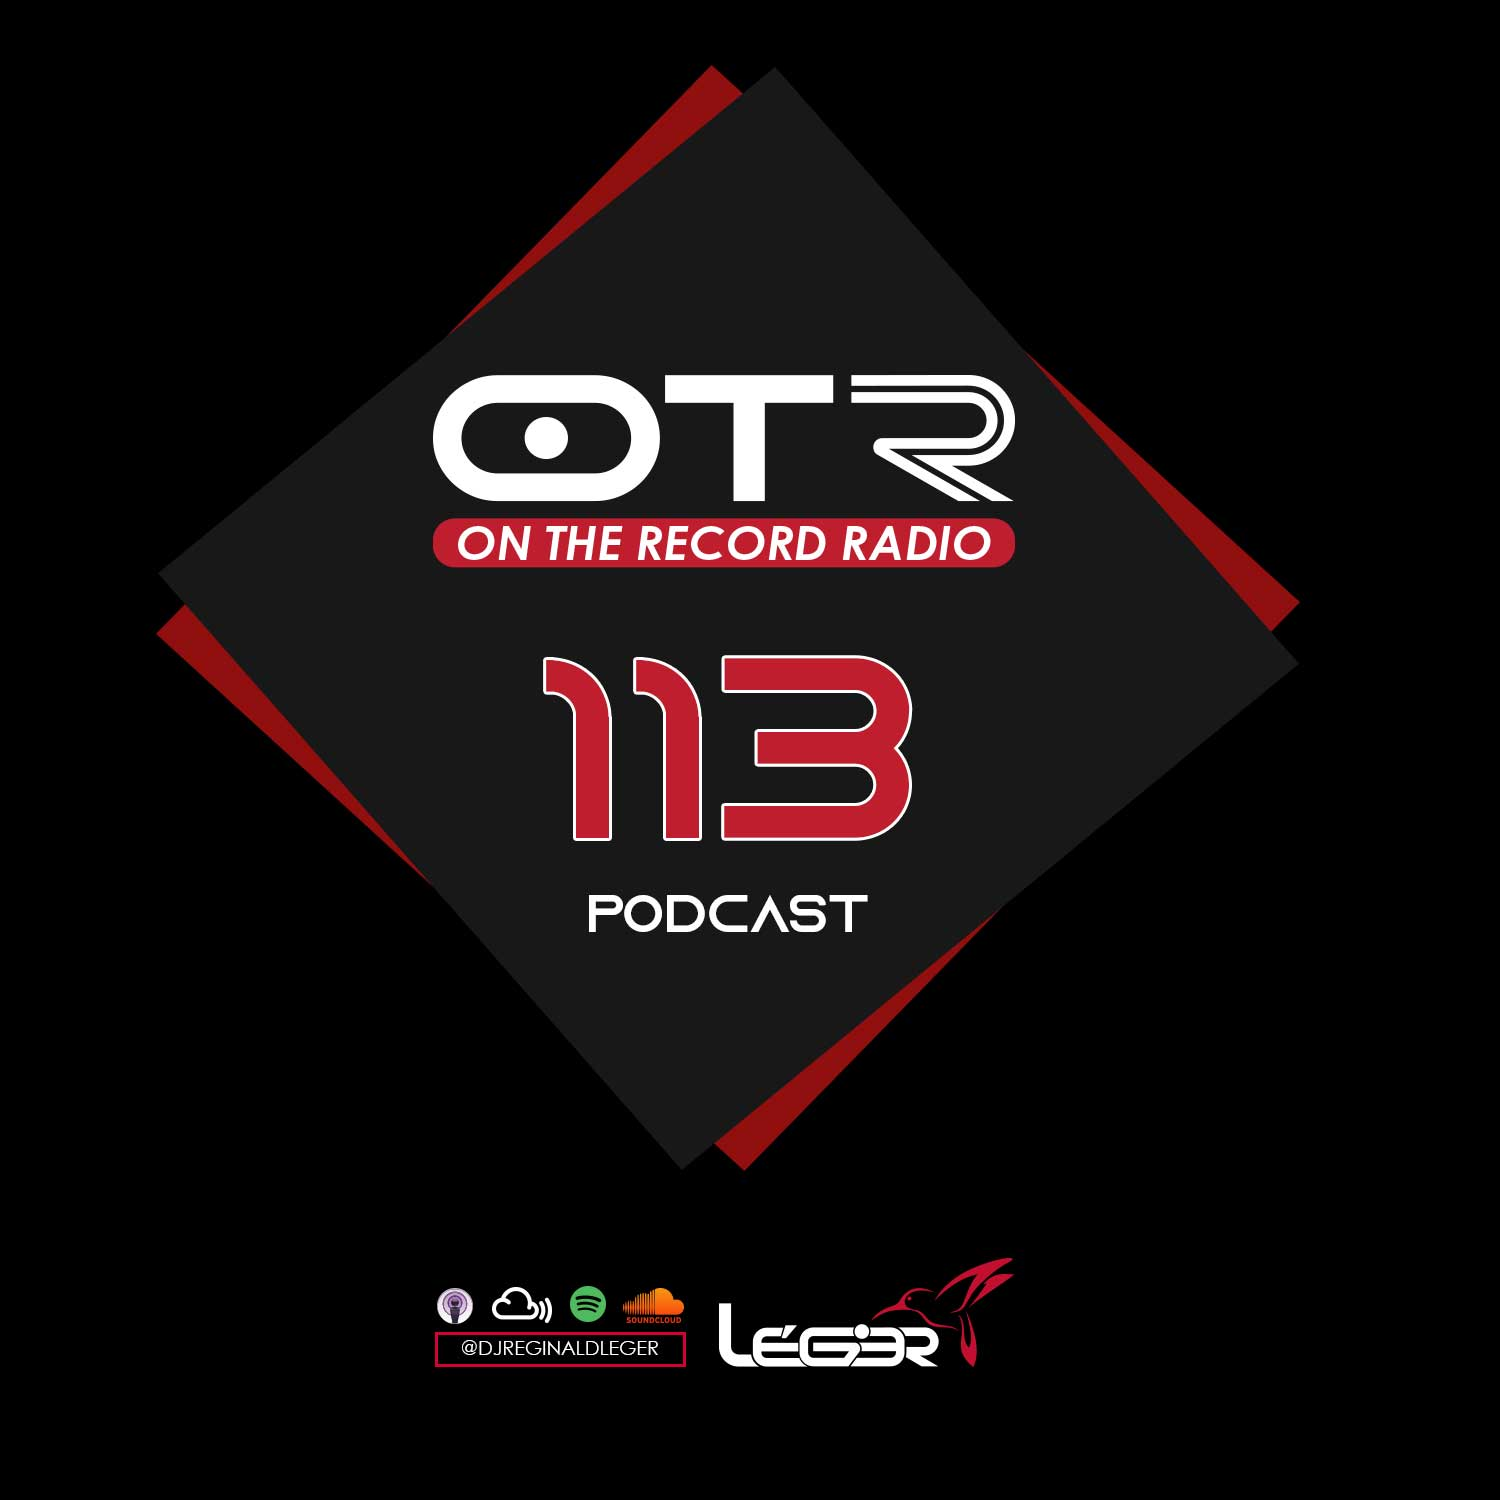 On The Record | OTR 113